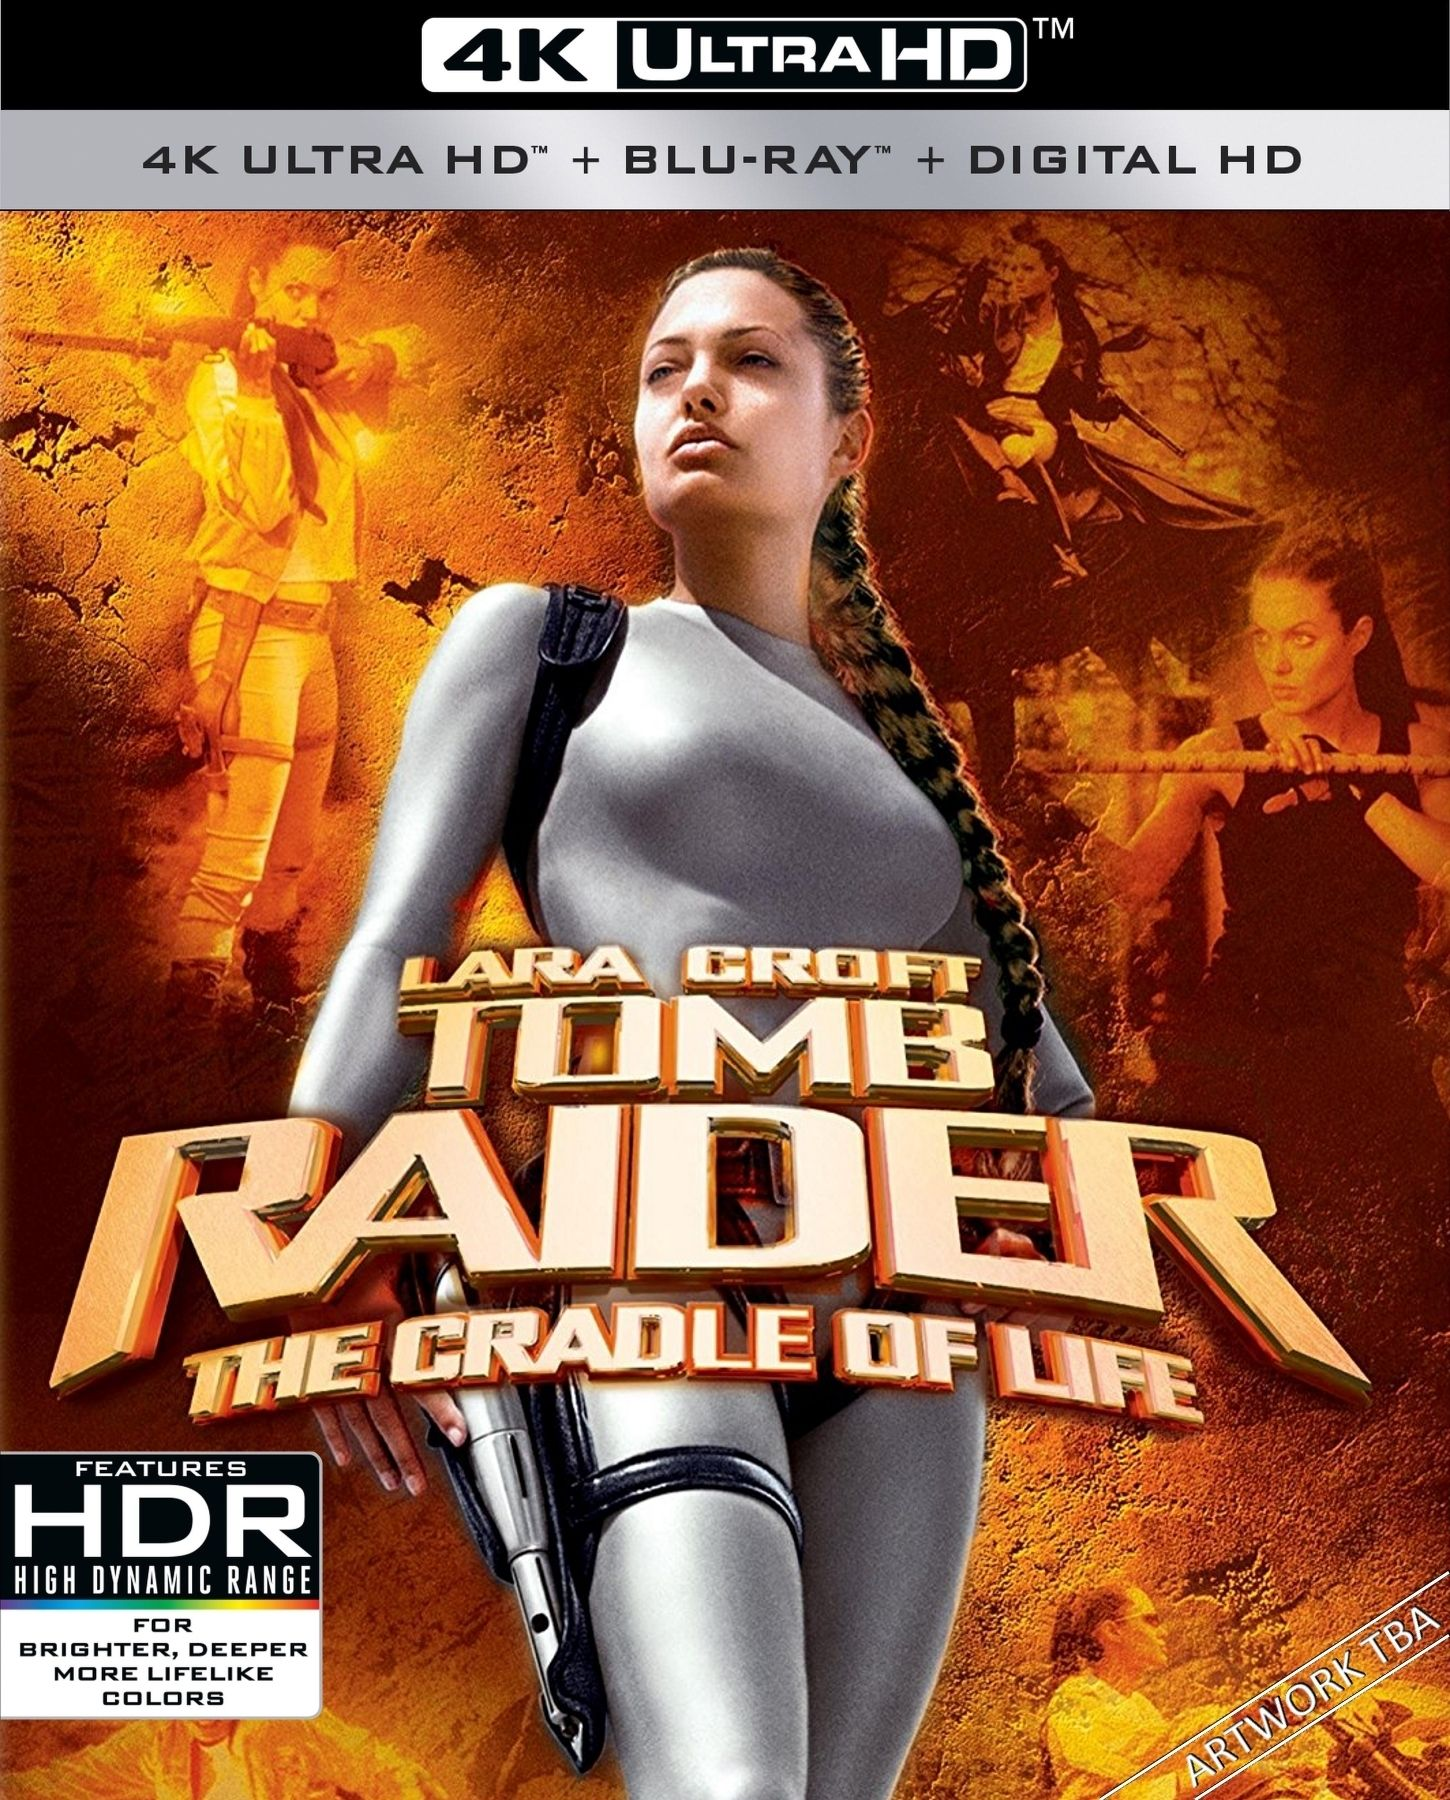 Lara Croft Tomb Raider The Cradle Of Life 4k 2003 Uhd